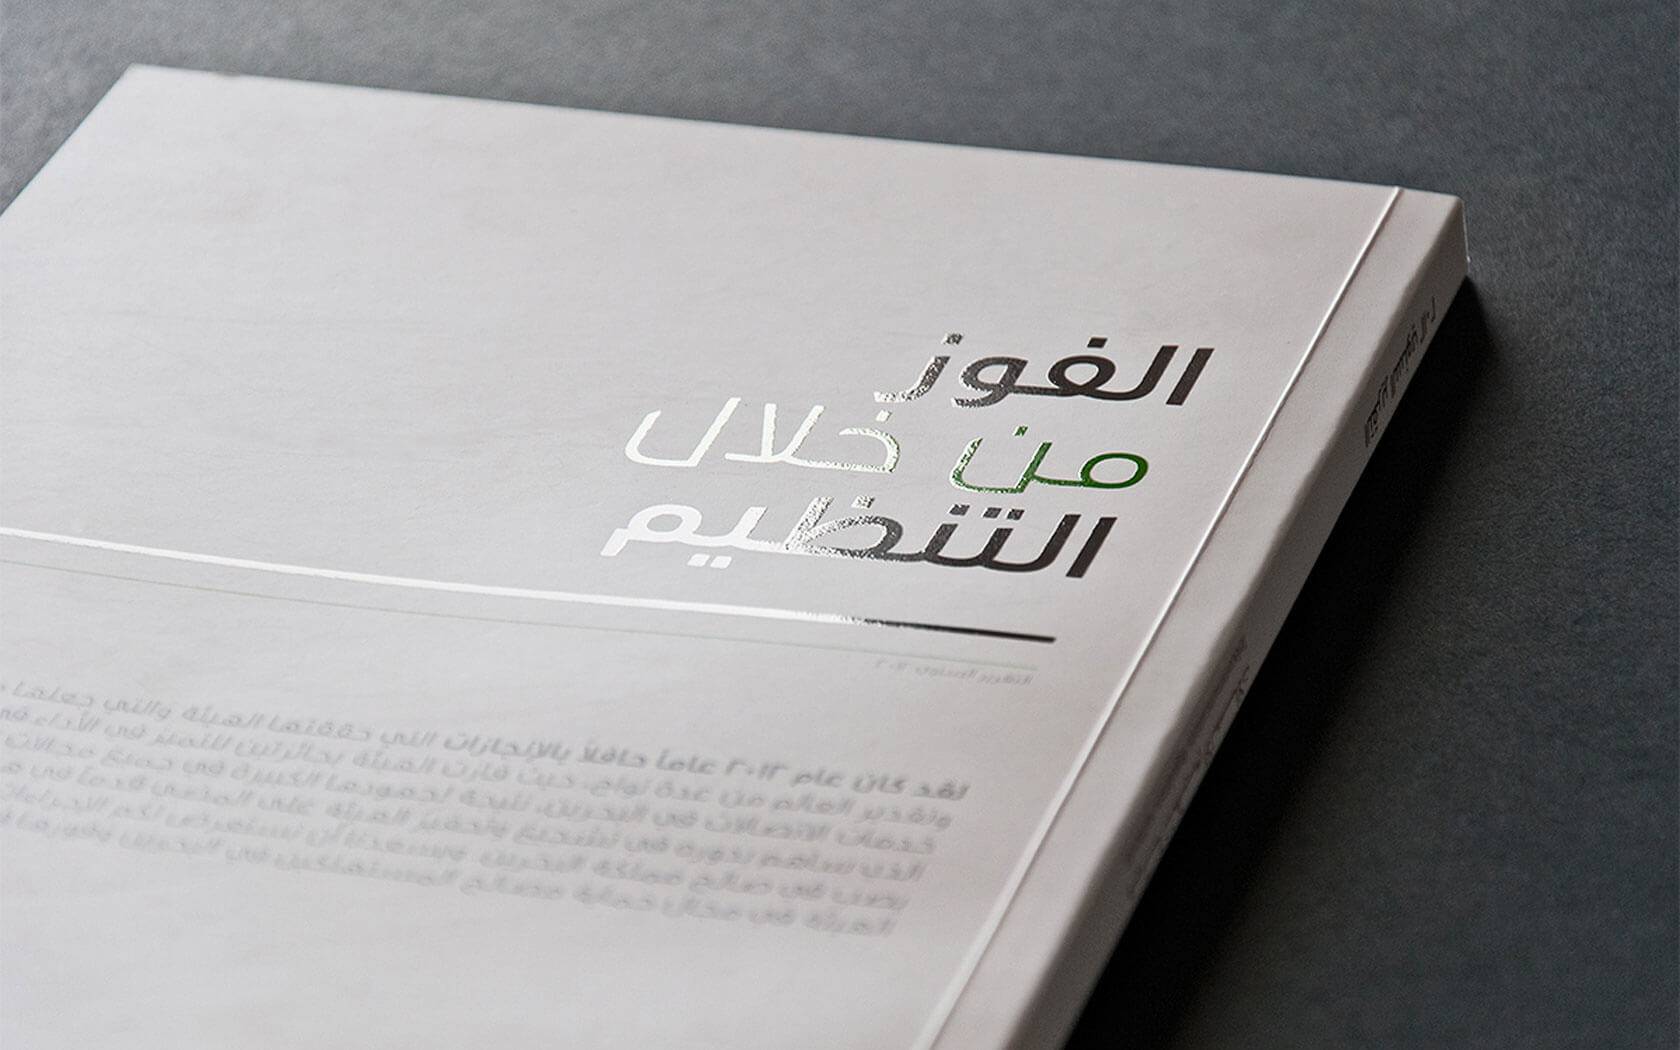 Unisono Branding, Strategy, Advertising, Campaigns, Communication, Design, Digital, Promotion, Collateral, Websites, Brochures, Flyers, Mobile Apps in Bahrain, Saudi Arabia KSA, Oman, Qatar, Kuwait, United Arab Emirates UAE, GCC, Middle East and North Africa MENA